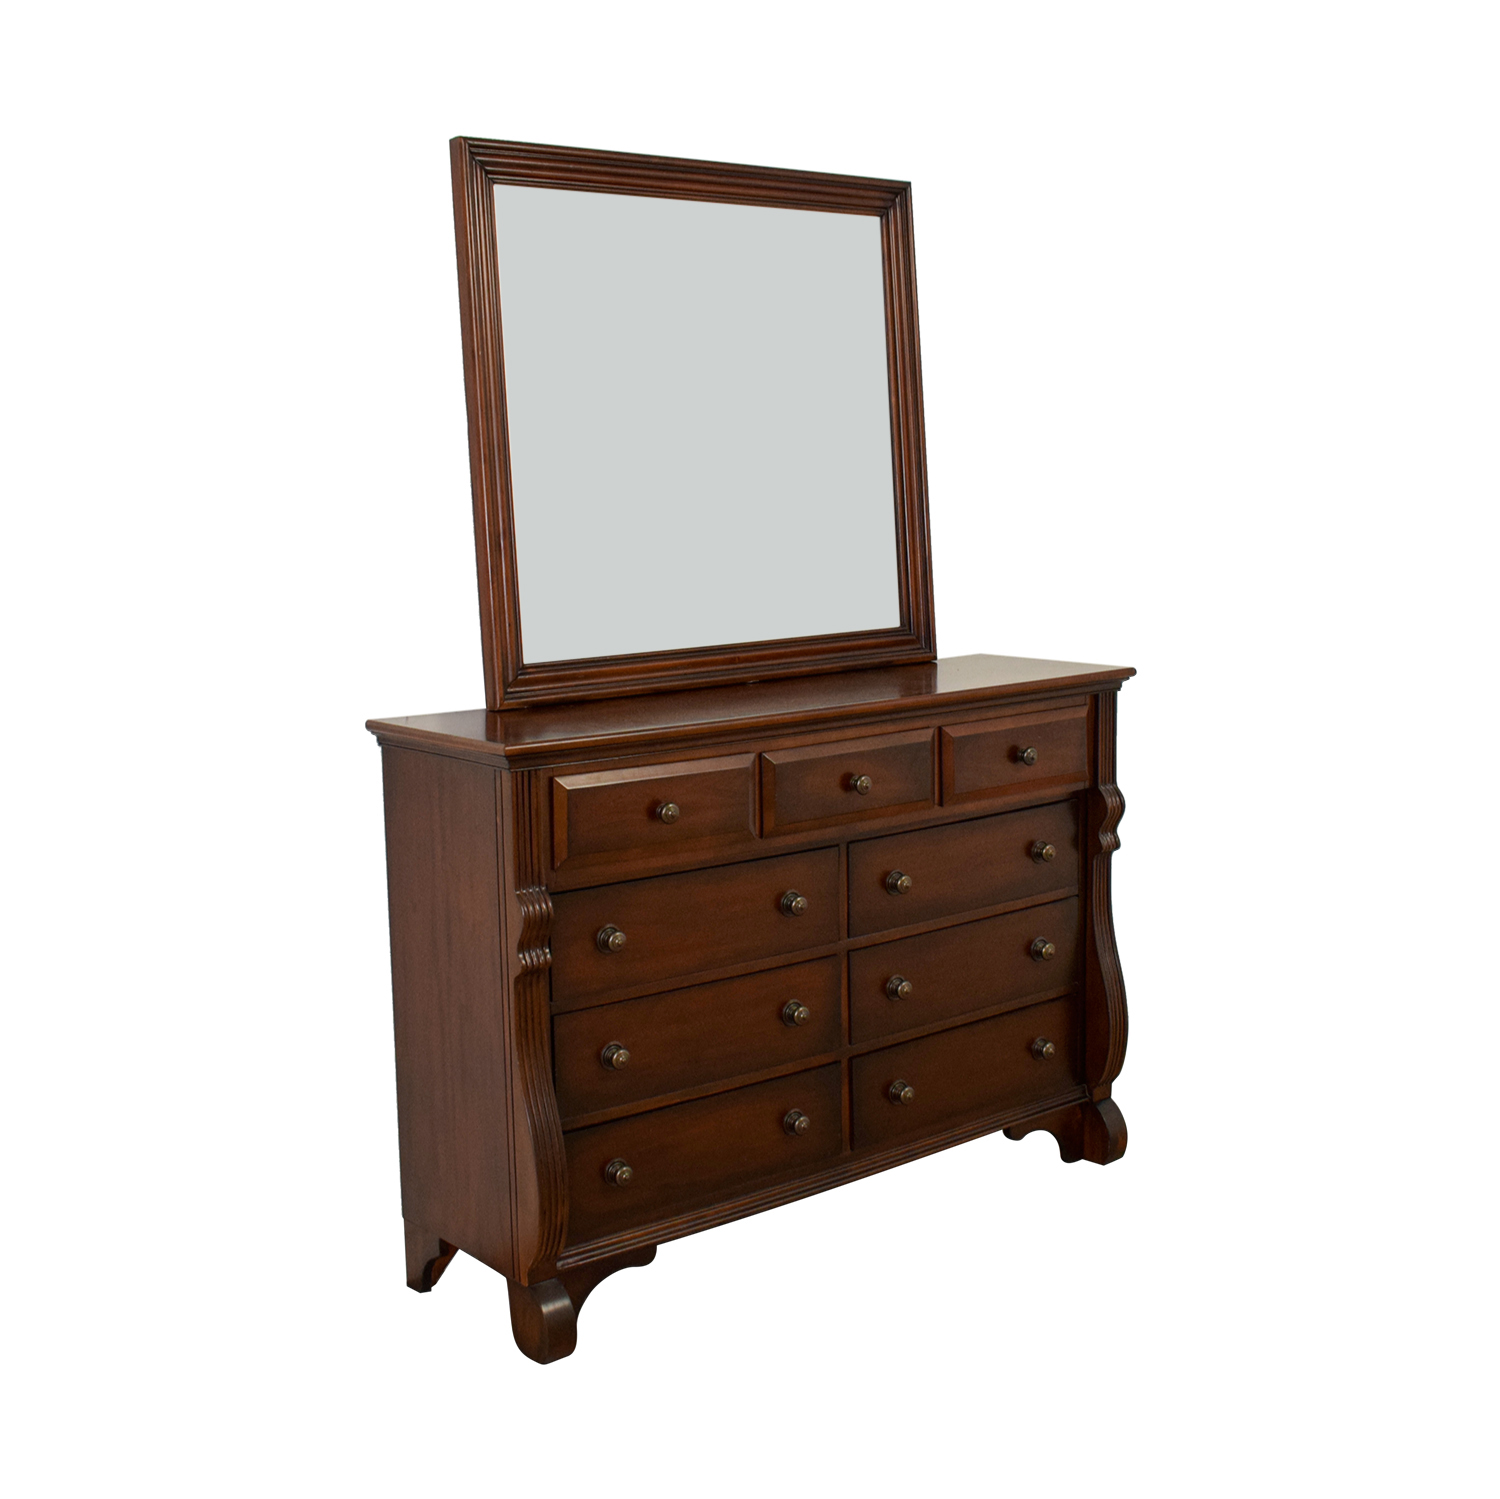 Bob's Furniture Bob's Furniture Nine-Drawer Dresser with Mirror used